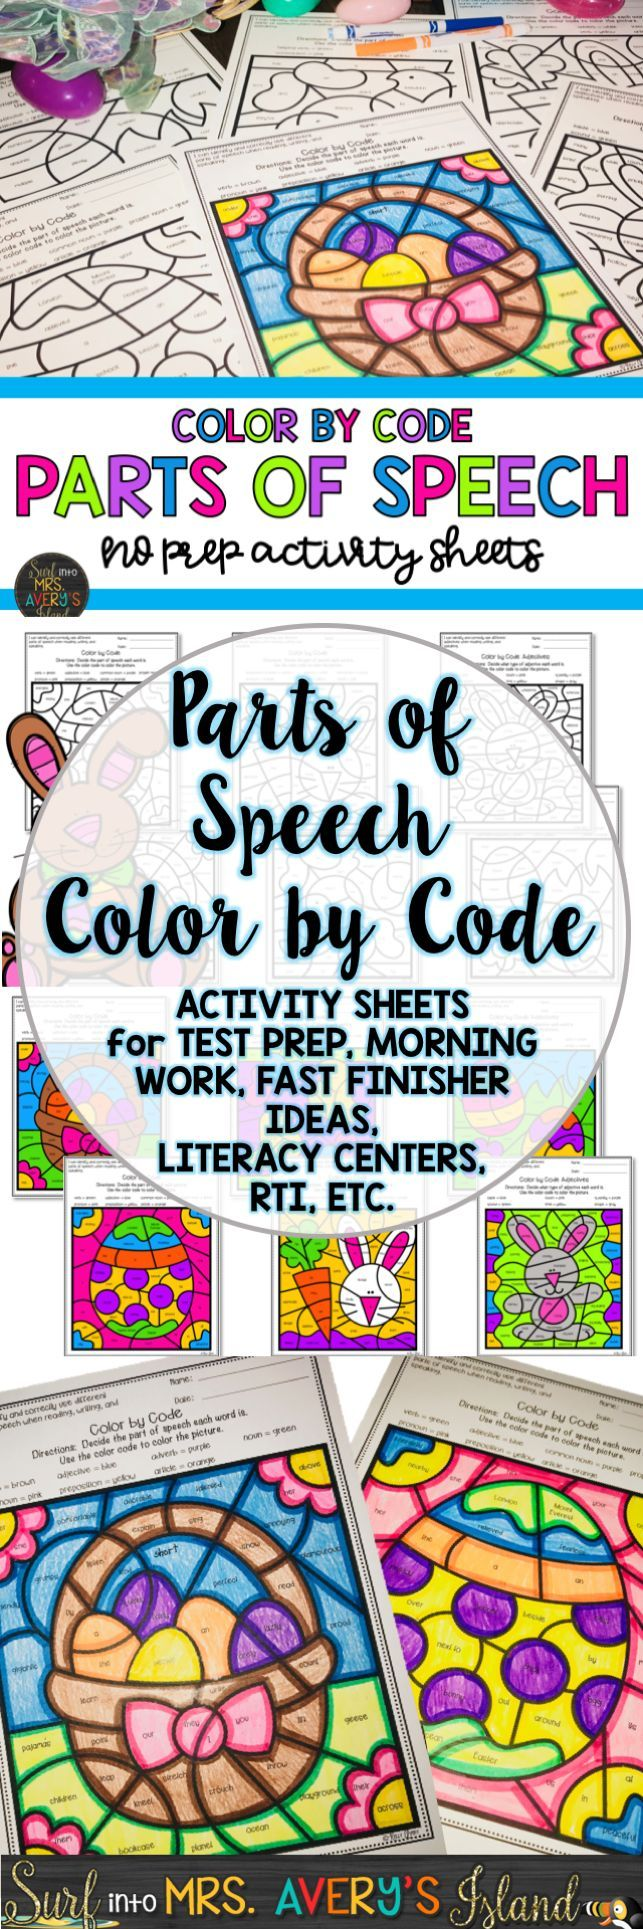 Spring Color by Code Parts of Speech Worksheets | Elementary teacher ...